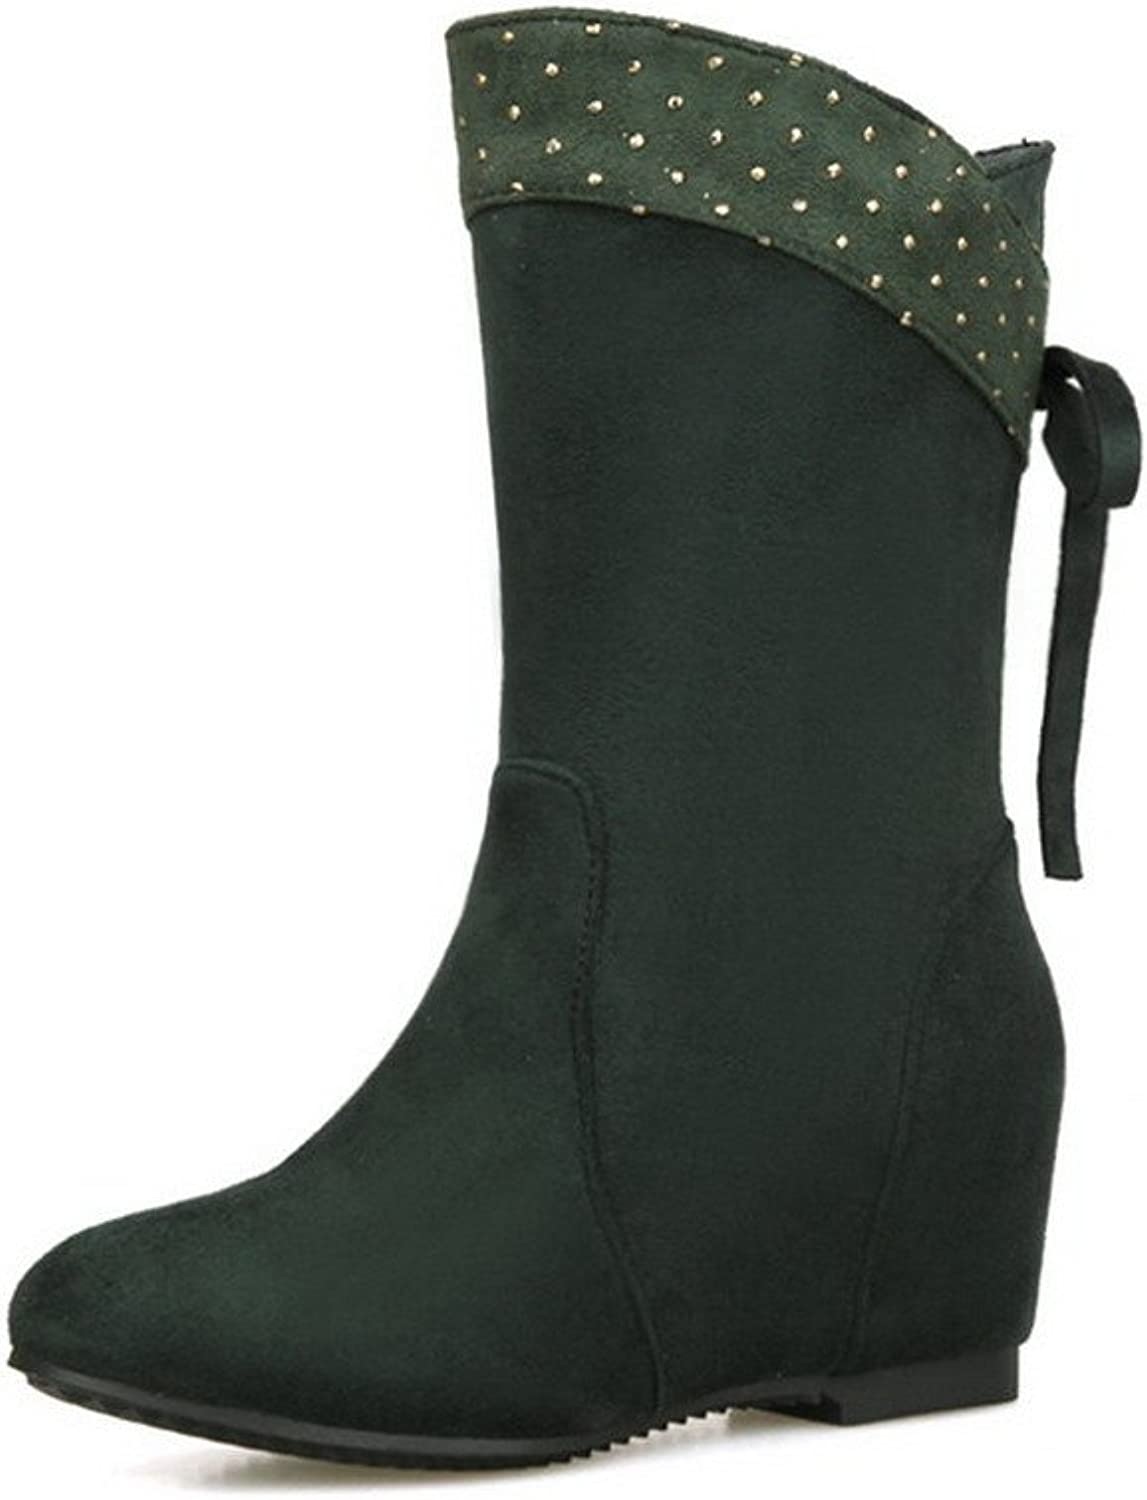 WeenFashion Women's Frosted Pull-On Round Closed Toe Kitten Heels Low-Top Boots